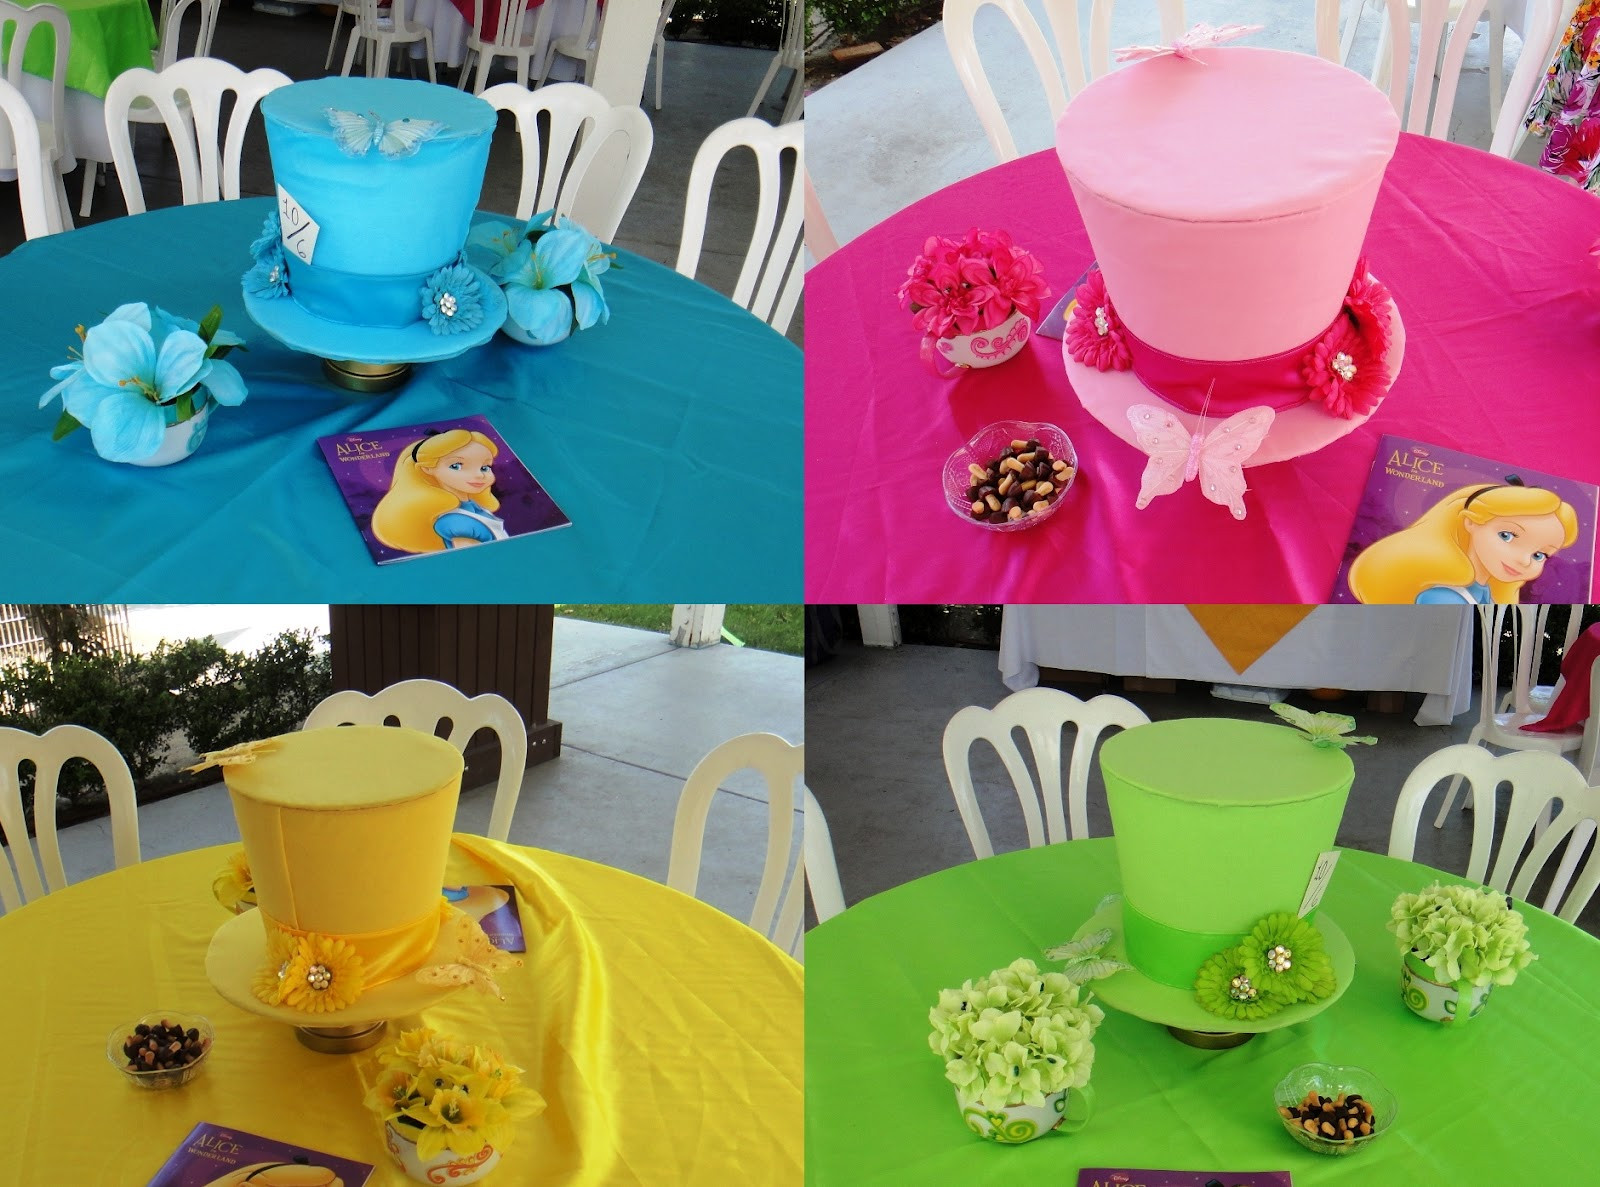 Alice In Wonderland Decorations DIY  DIY Mad Hatter Centerpieces This Fairy Tale Life